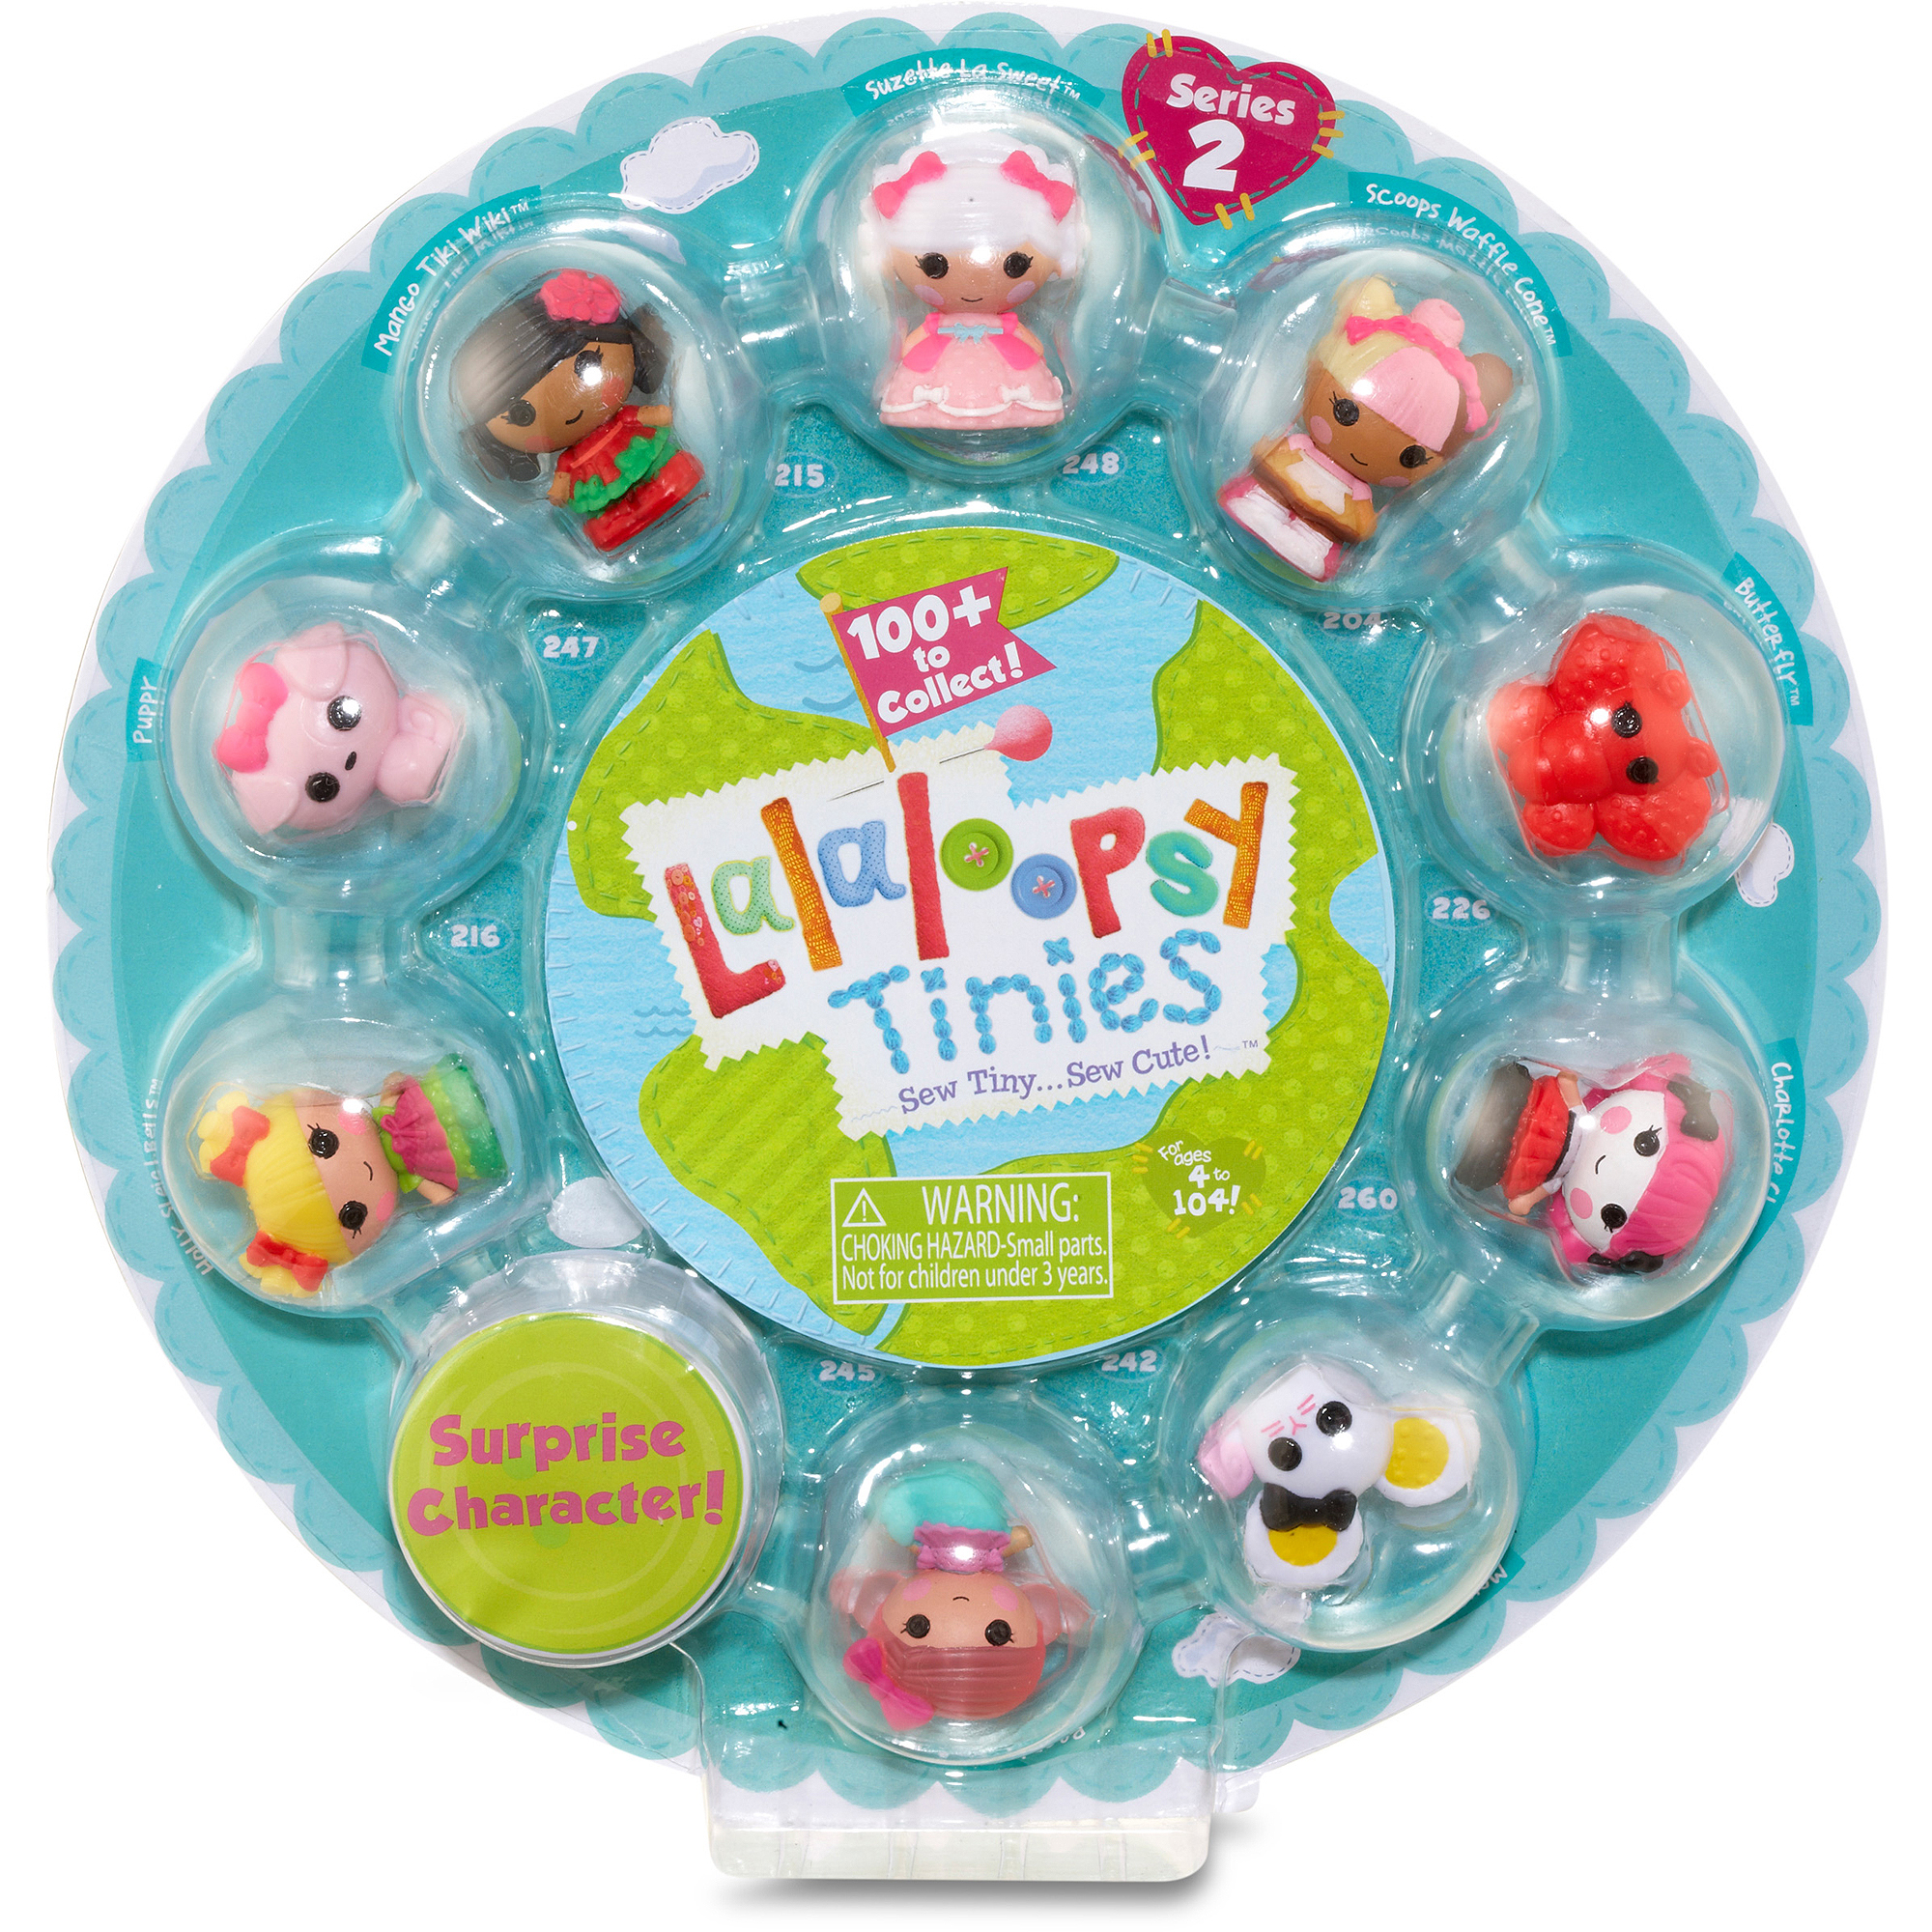 Lalaloopsy Tinies 10-Pack, Style 4